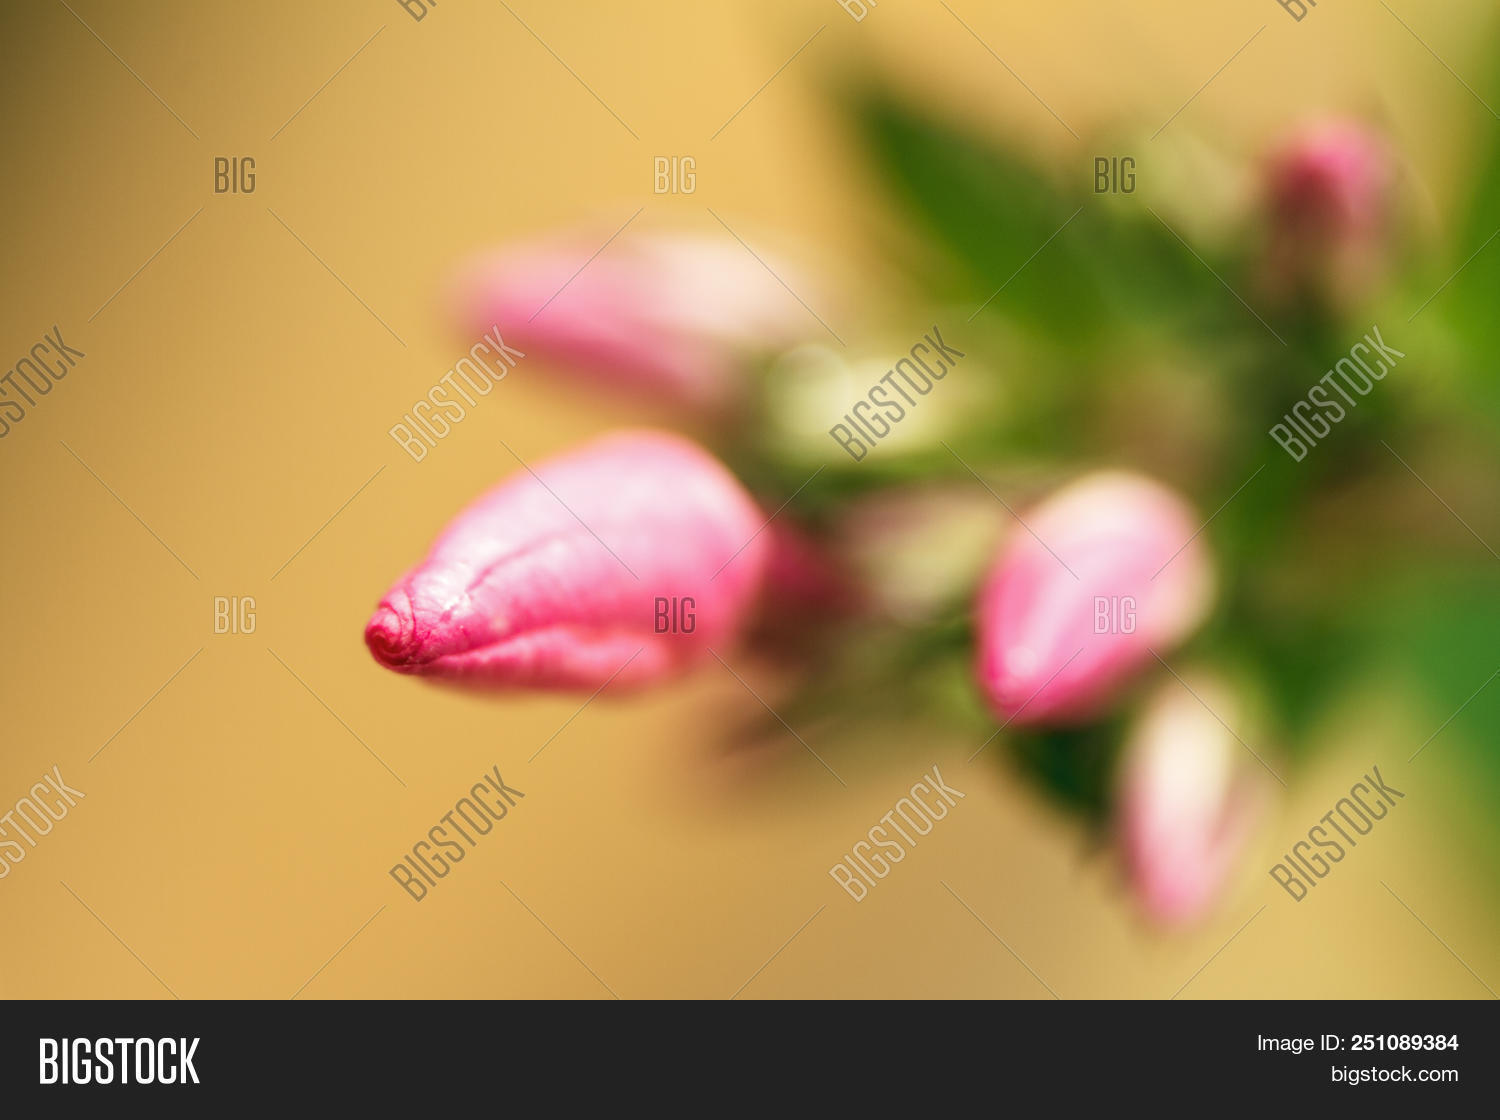 Fresh bud of beautiful flower in macro. Abctract background for design. Copy space.